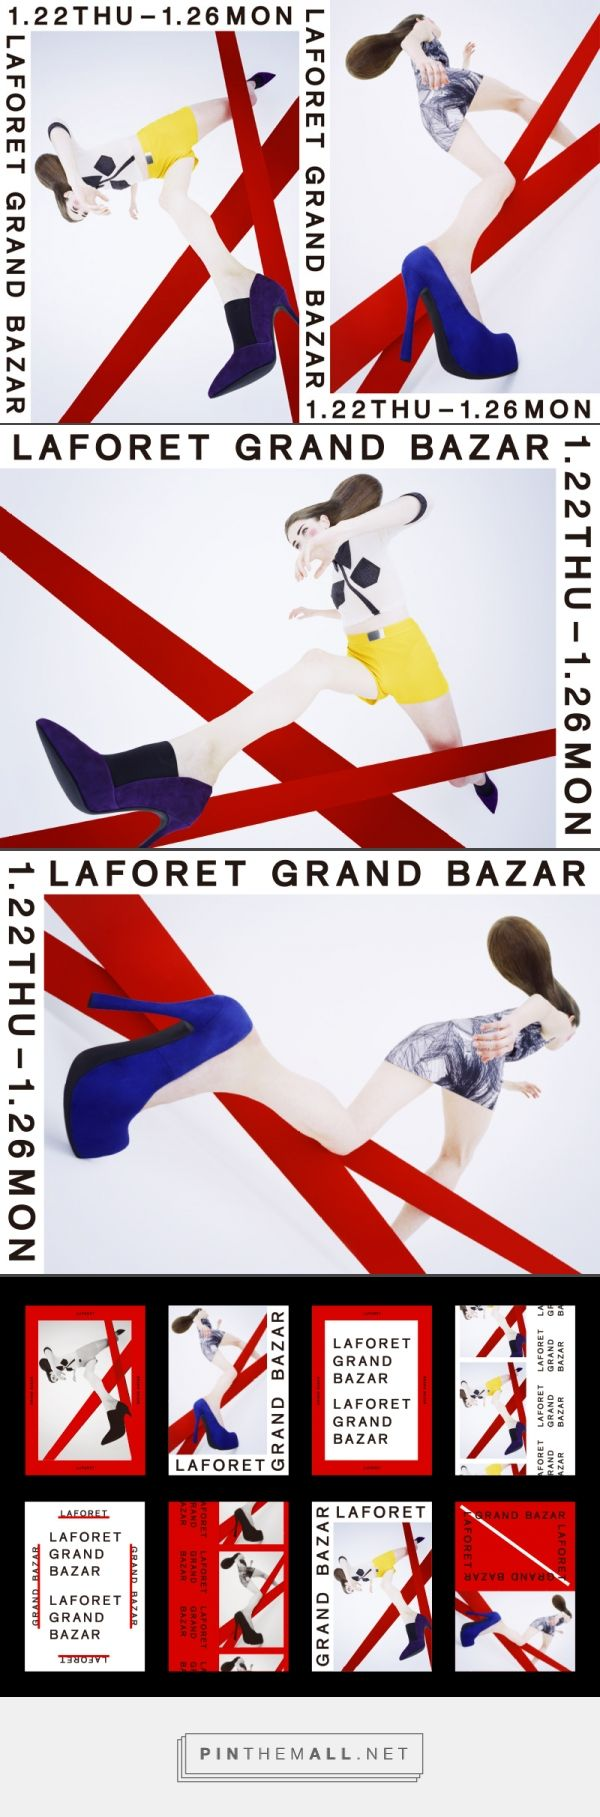 LAFORET GRAND BAZAR 2015 WINTER / Naonori Yago